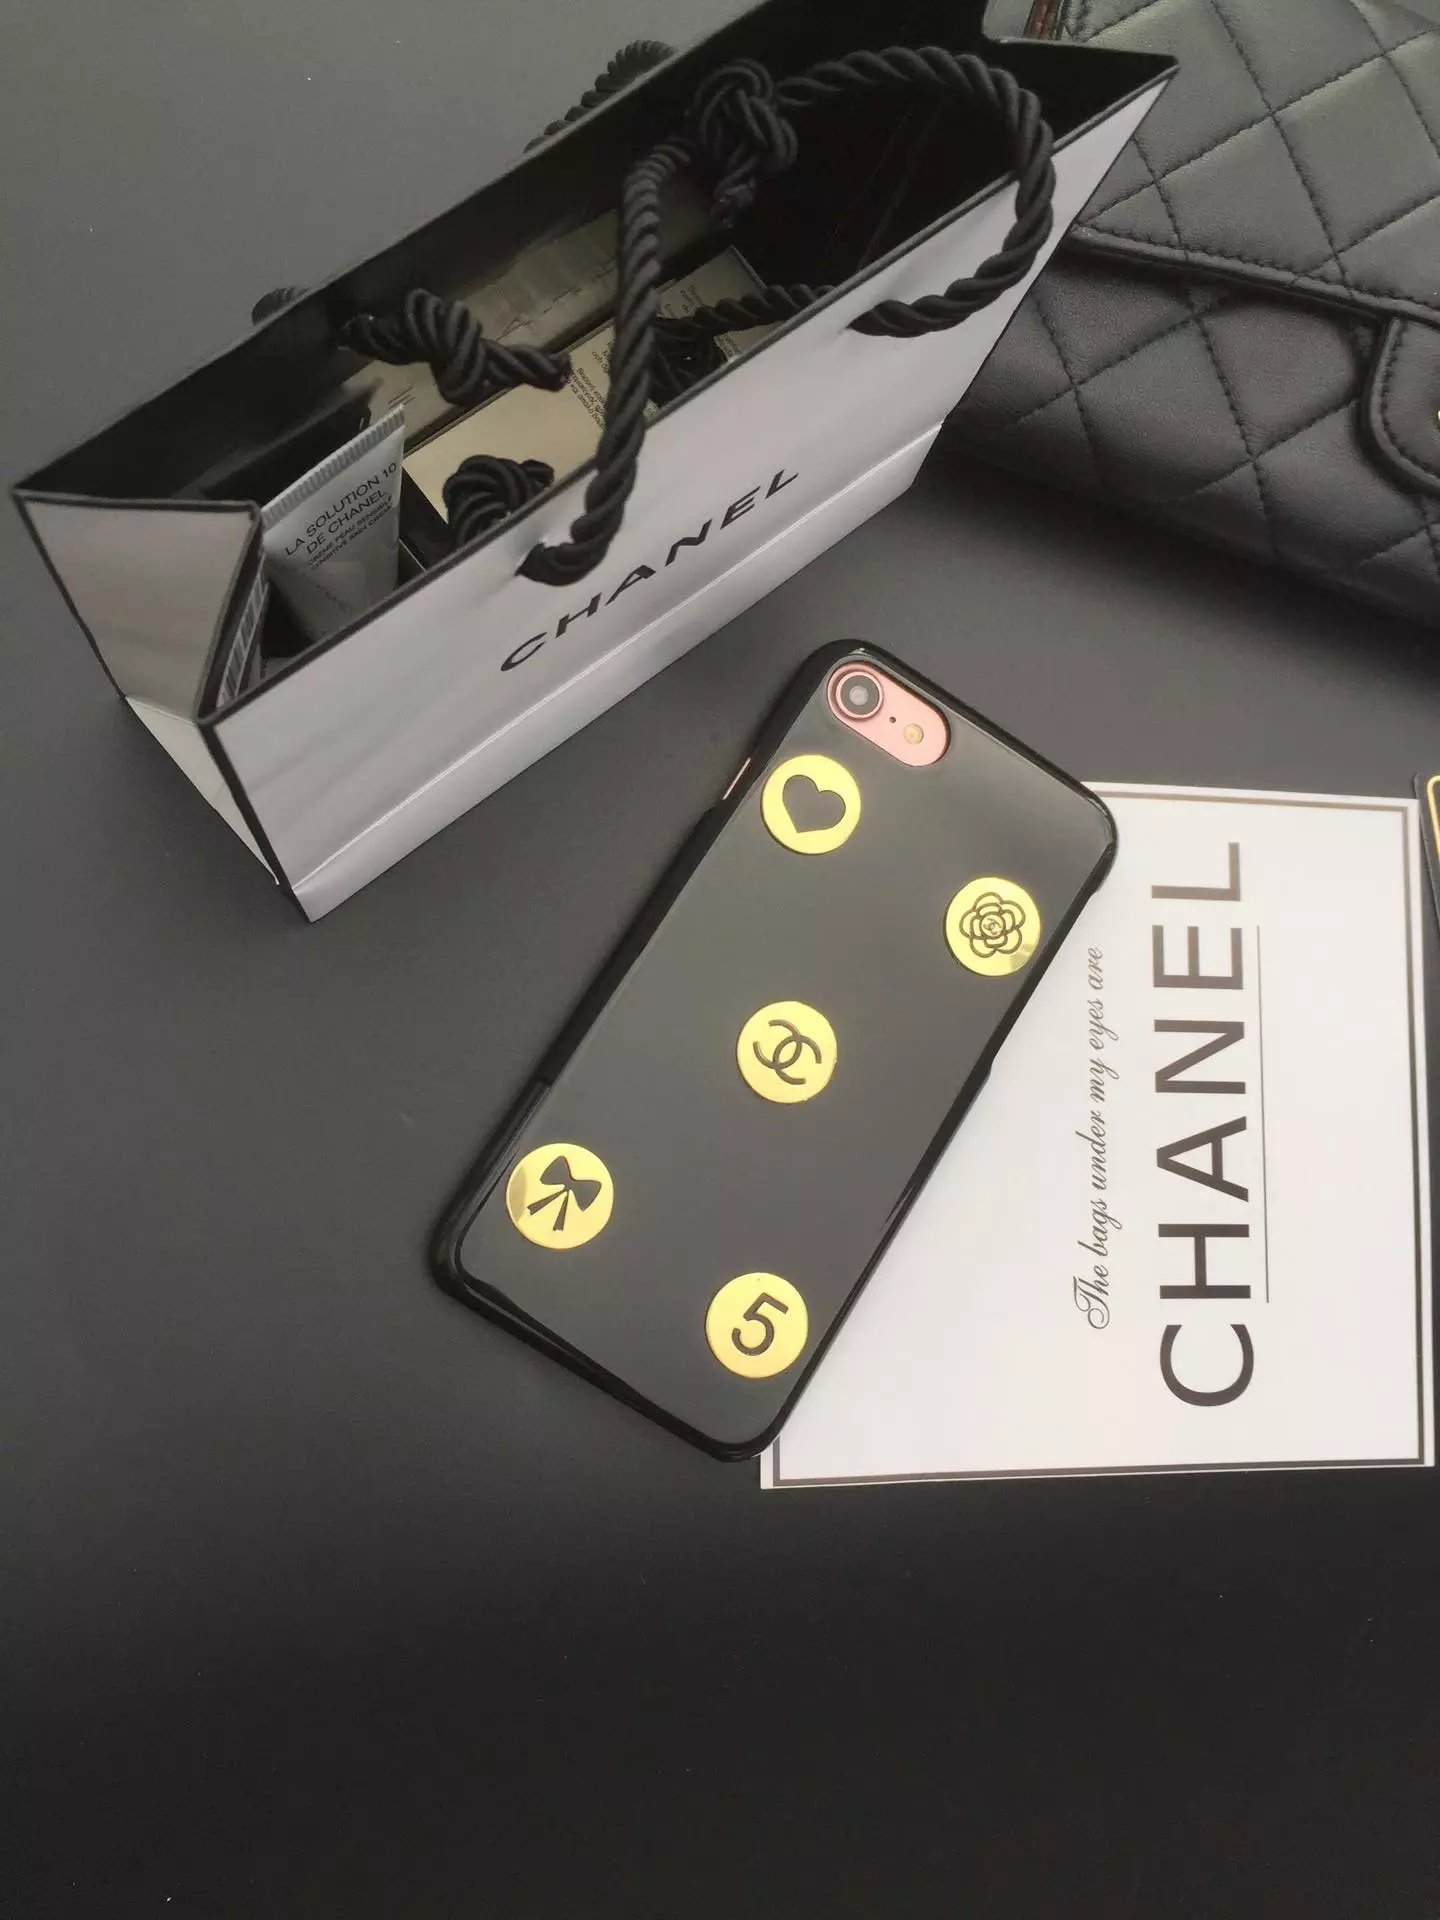 cell phone case iphone 6 all iphone 6 cases fashion iphone6 case apple press release iphone 6 online iphone 6 cover apple iphone 6 release date 2016 phone covers iphone sites for phone cases cover for mobile phone